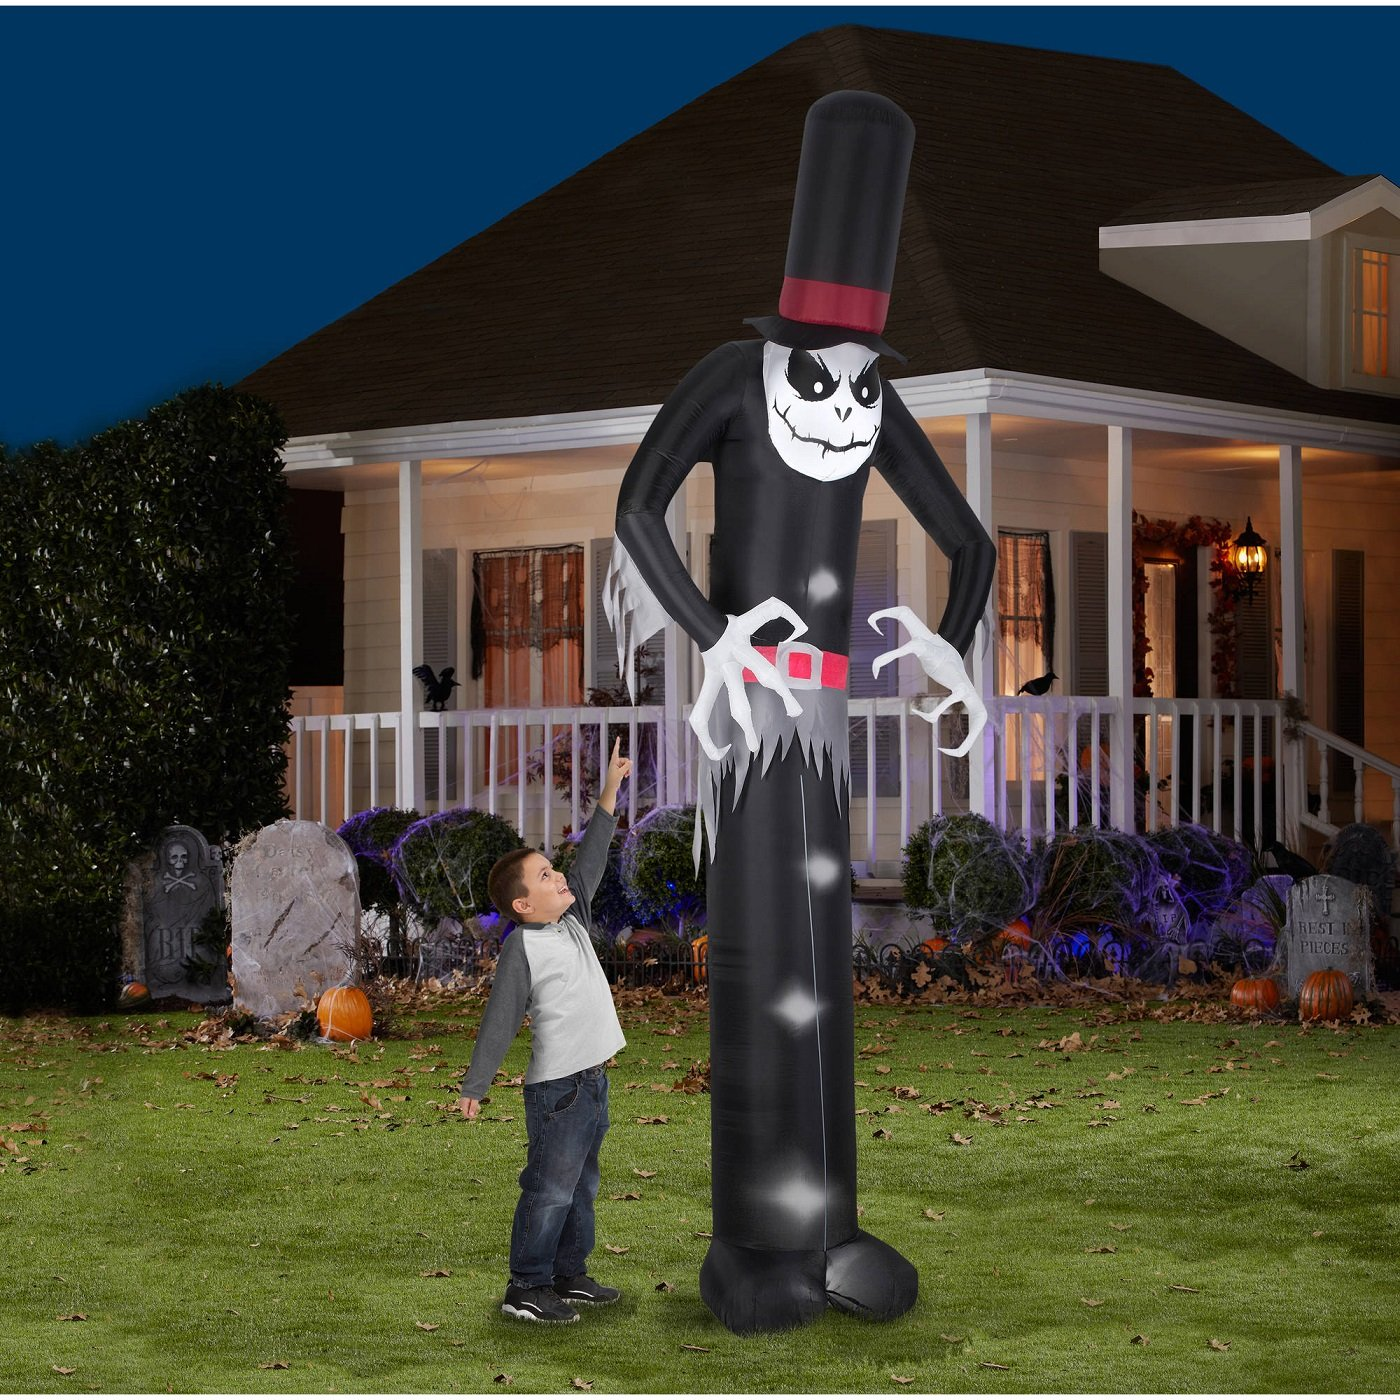 Gemmy Airblown Inflatable Mr. Skeleton Wearing Top Hat - Indoor Outdoor Holiday Decoration, 12-foot Tall